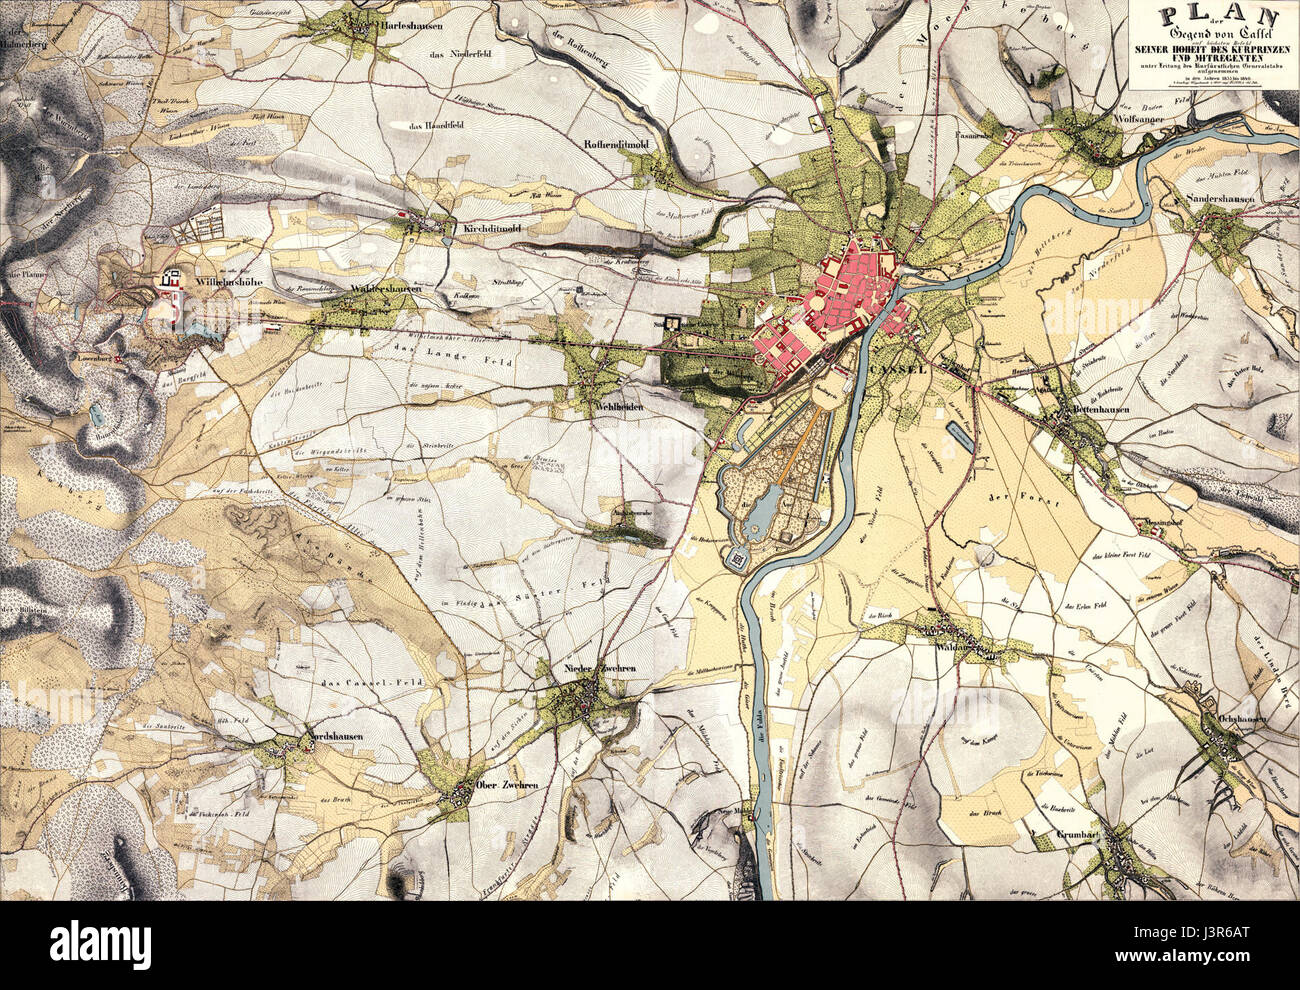 Karte Kassel Generalstab 1835 Stock Photo 140036816 Alamy